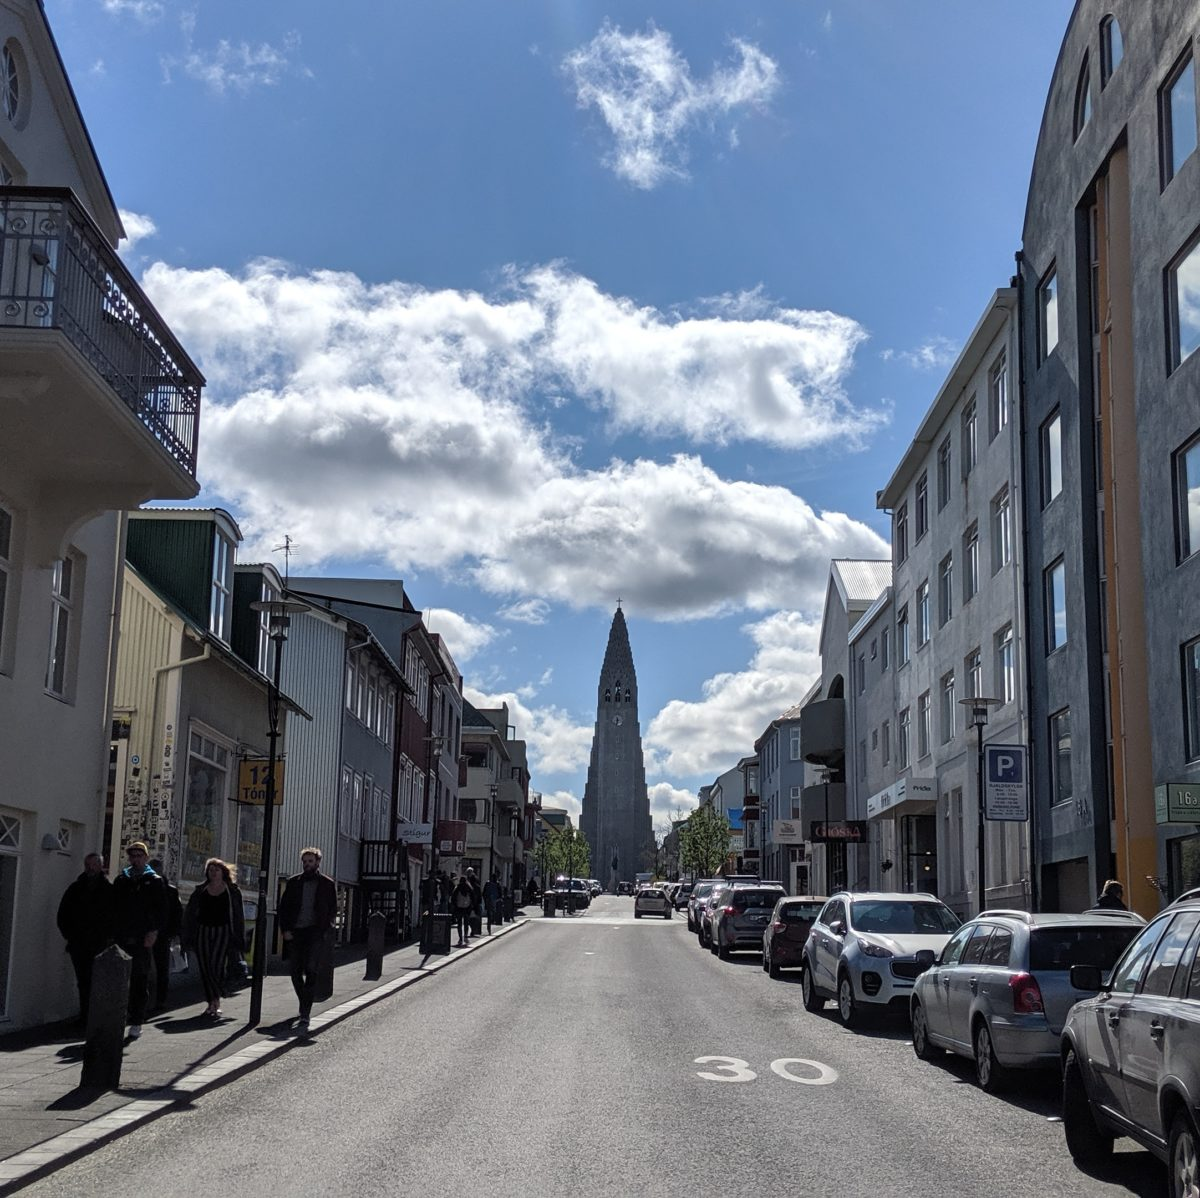 Down the street at Hallgrímskirkja